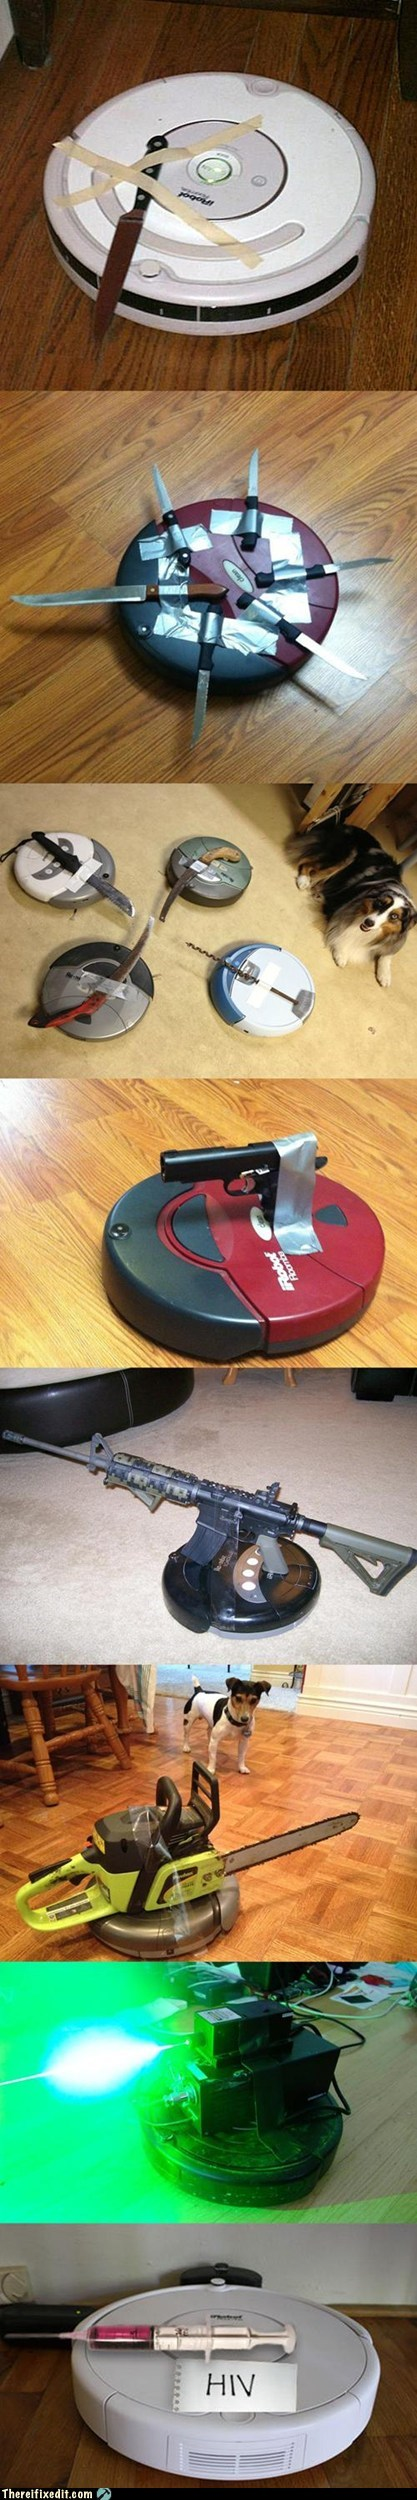 doomba gun irobot knife revolution roomba there I fixed it uprising - 6513993216